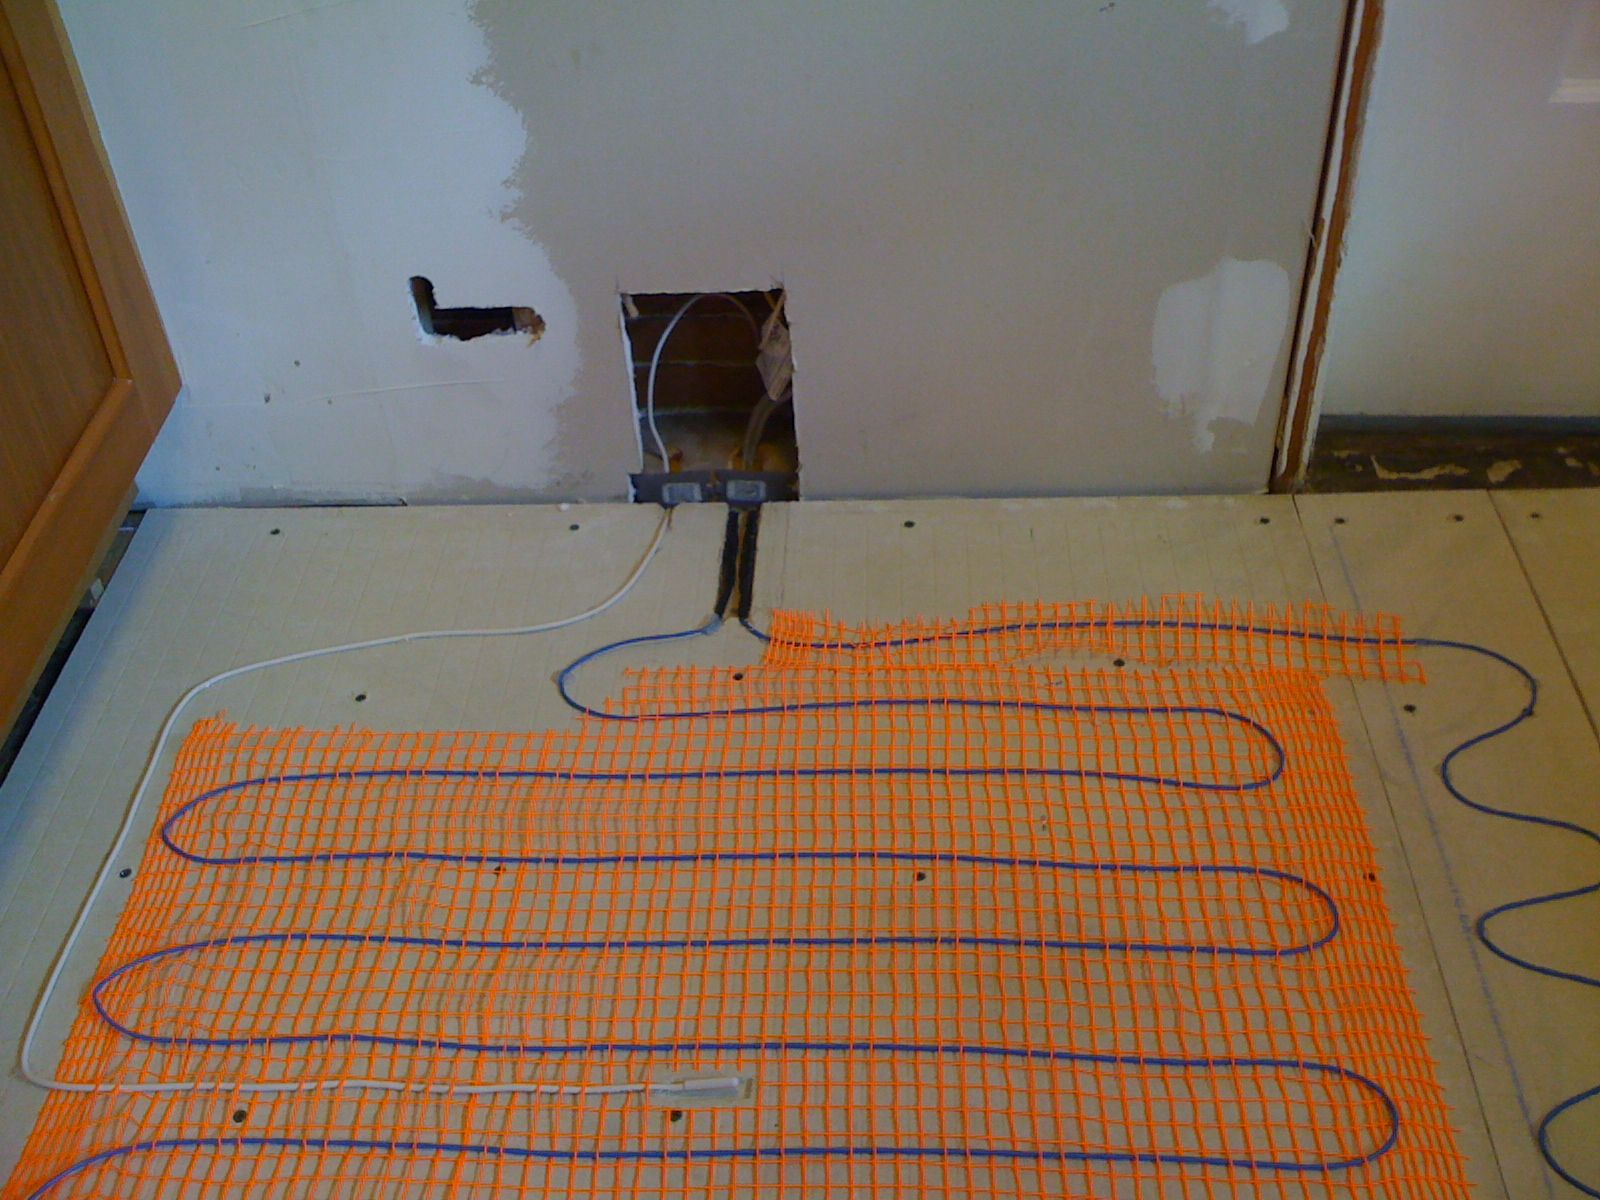 Kitchen diy heated floor and new tile kitchens kitchen diy heated floor and new tile dailygadgetfo Images